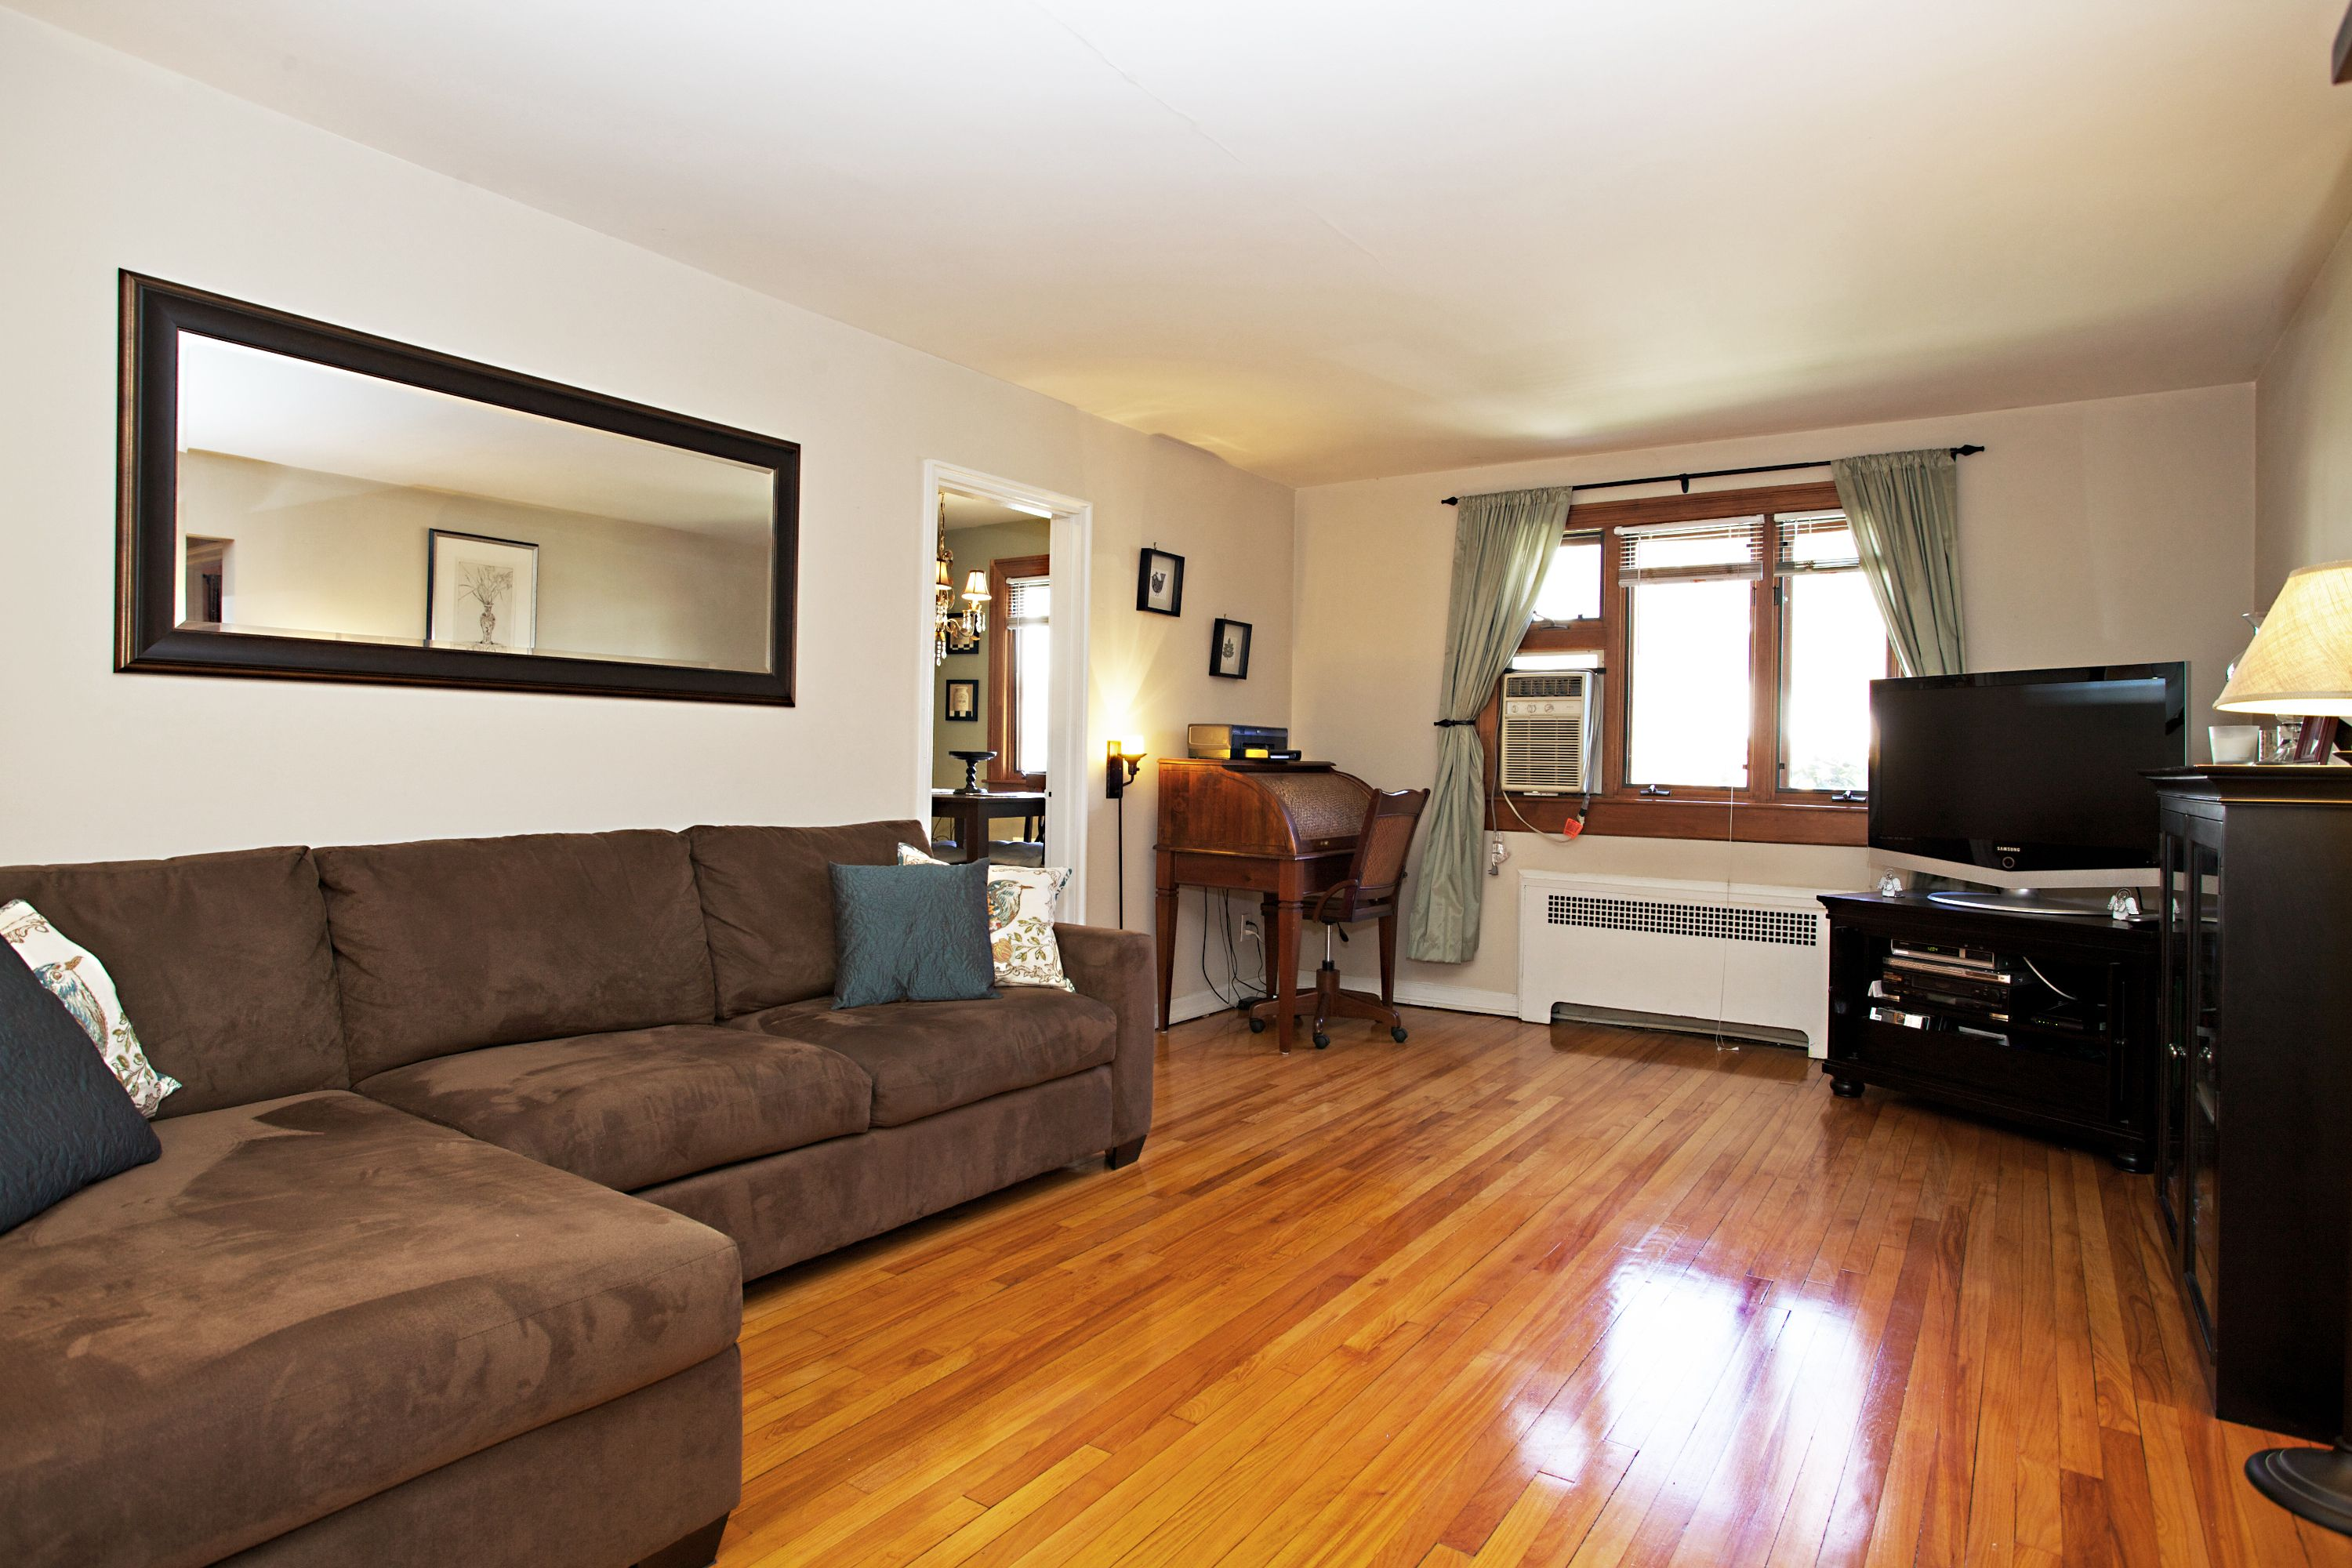 Townhouse for Rent at Must-See Beautifully Renovated Condo! 520 Broad Avenue 15 Englewood, New Jersey, 07631 United States